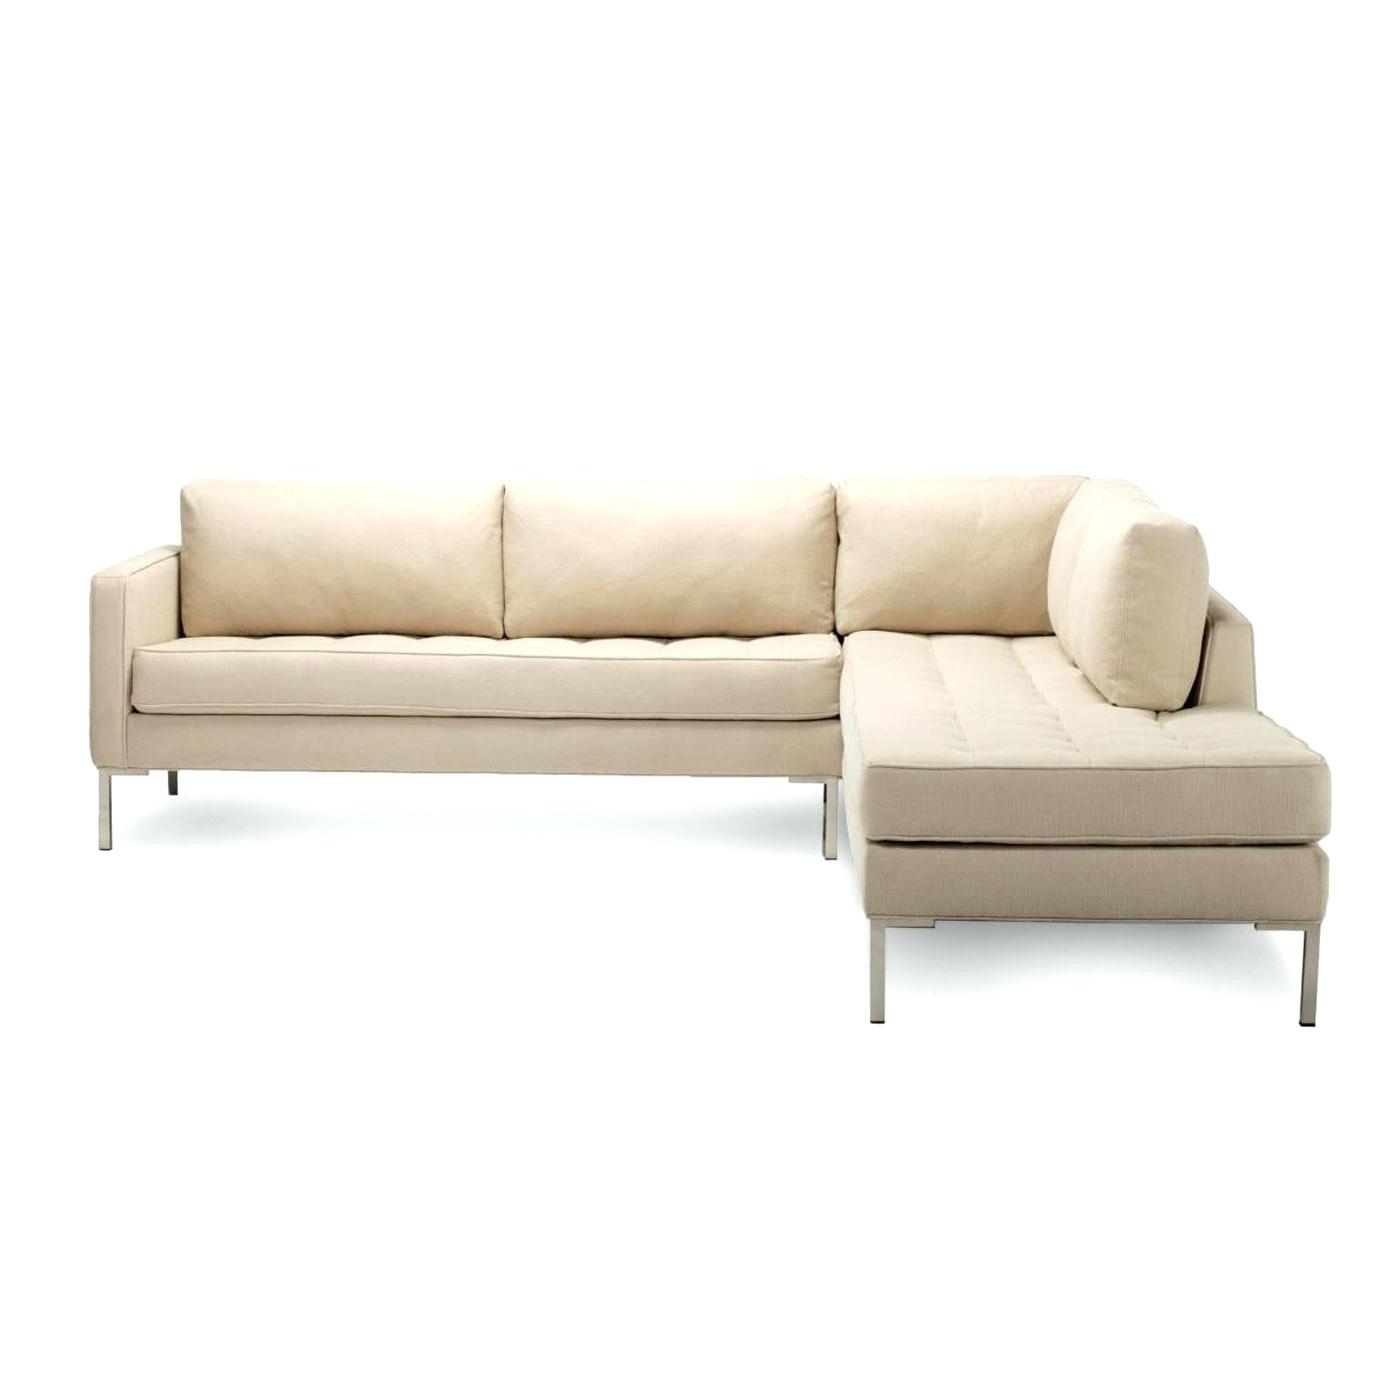 Contemporary Sectional Sofas Sofa Otto Furniture Decor Couches Small With Regard To Contemporary Sectional Sofas (View 9 of 10)